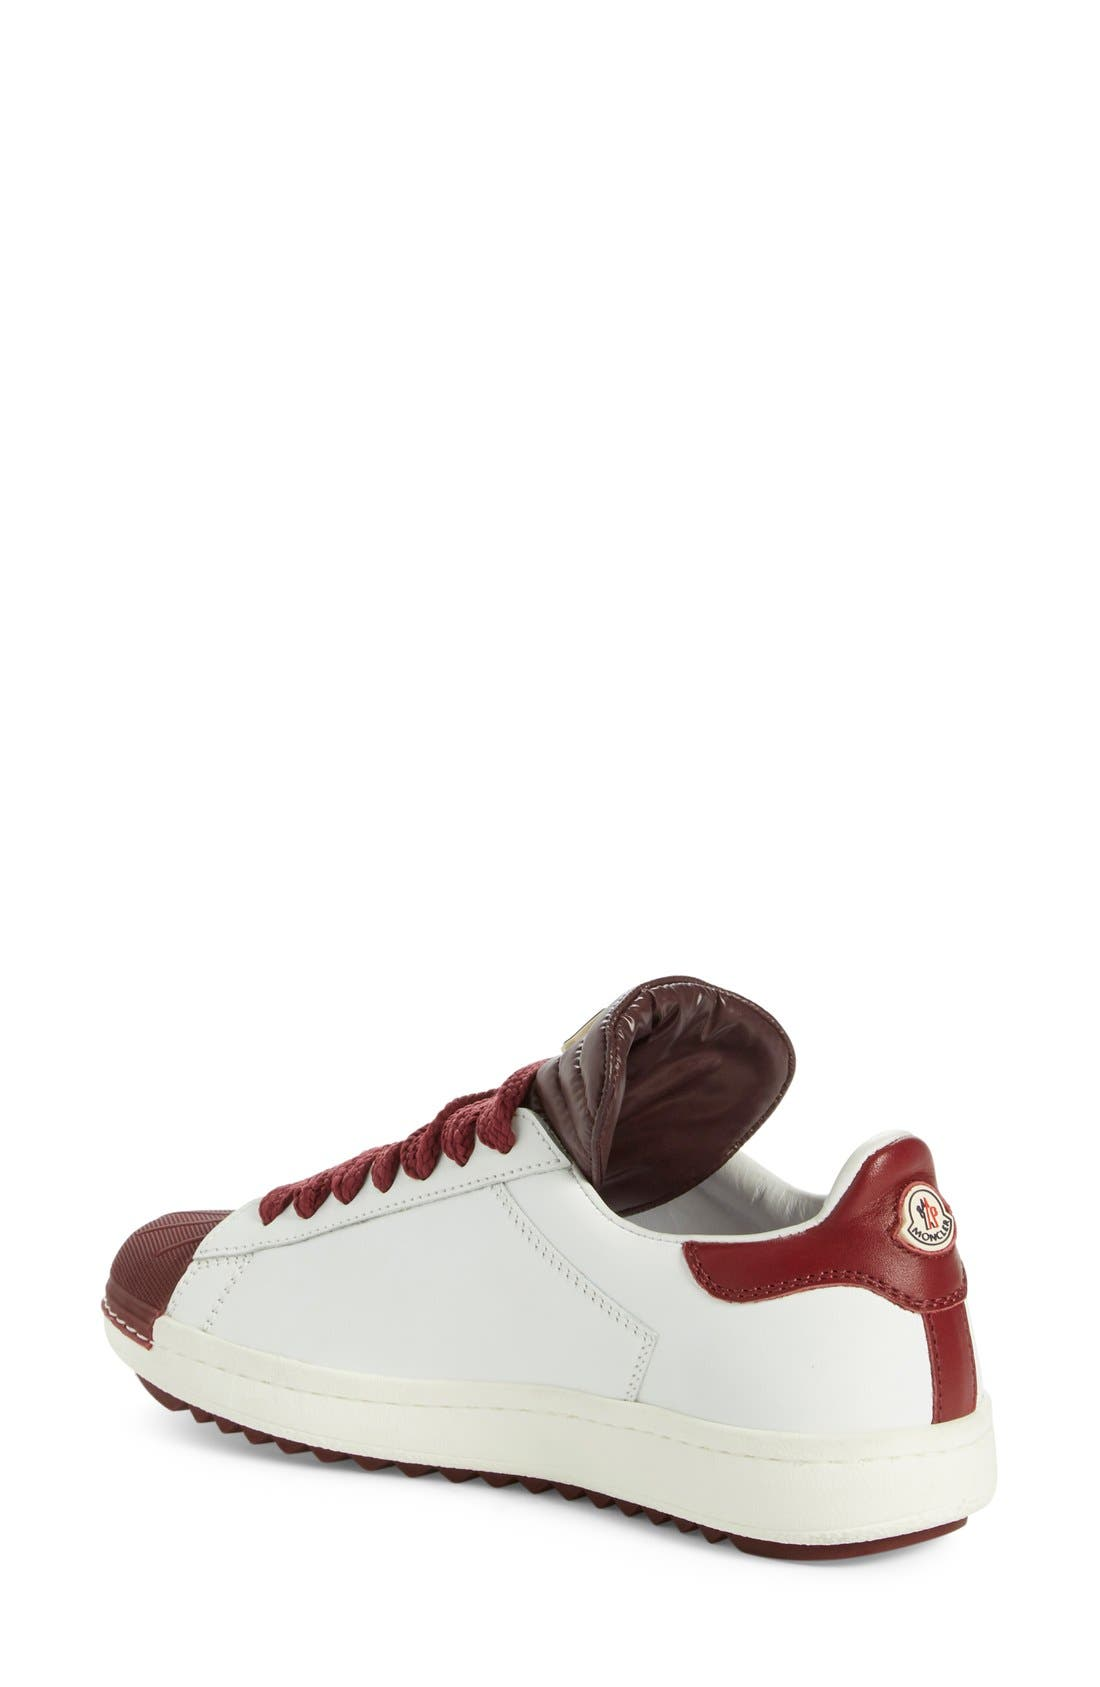 Alternate Image 2  - Moncler 'Angeline Scarpa' Sneaker (Women)